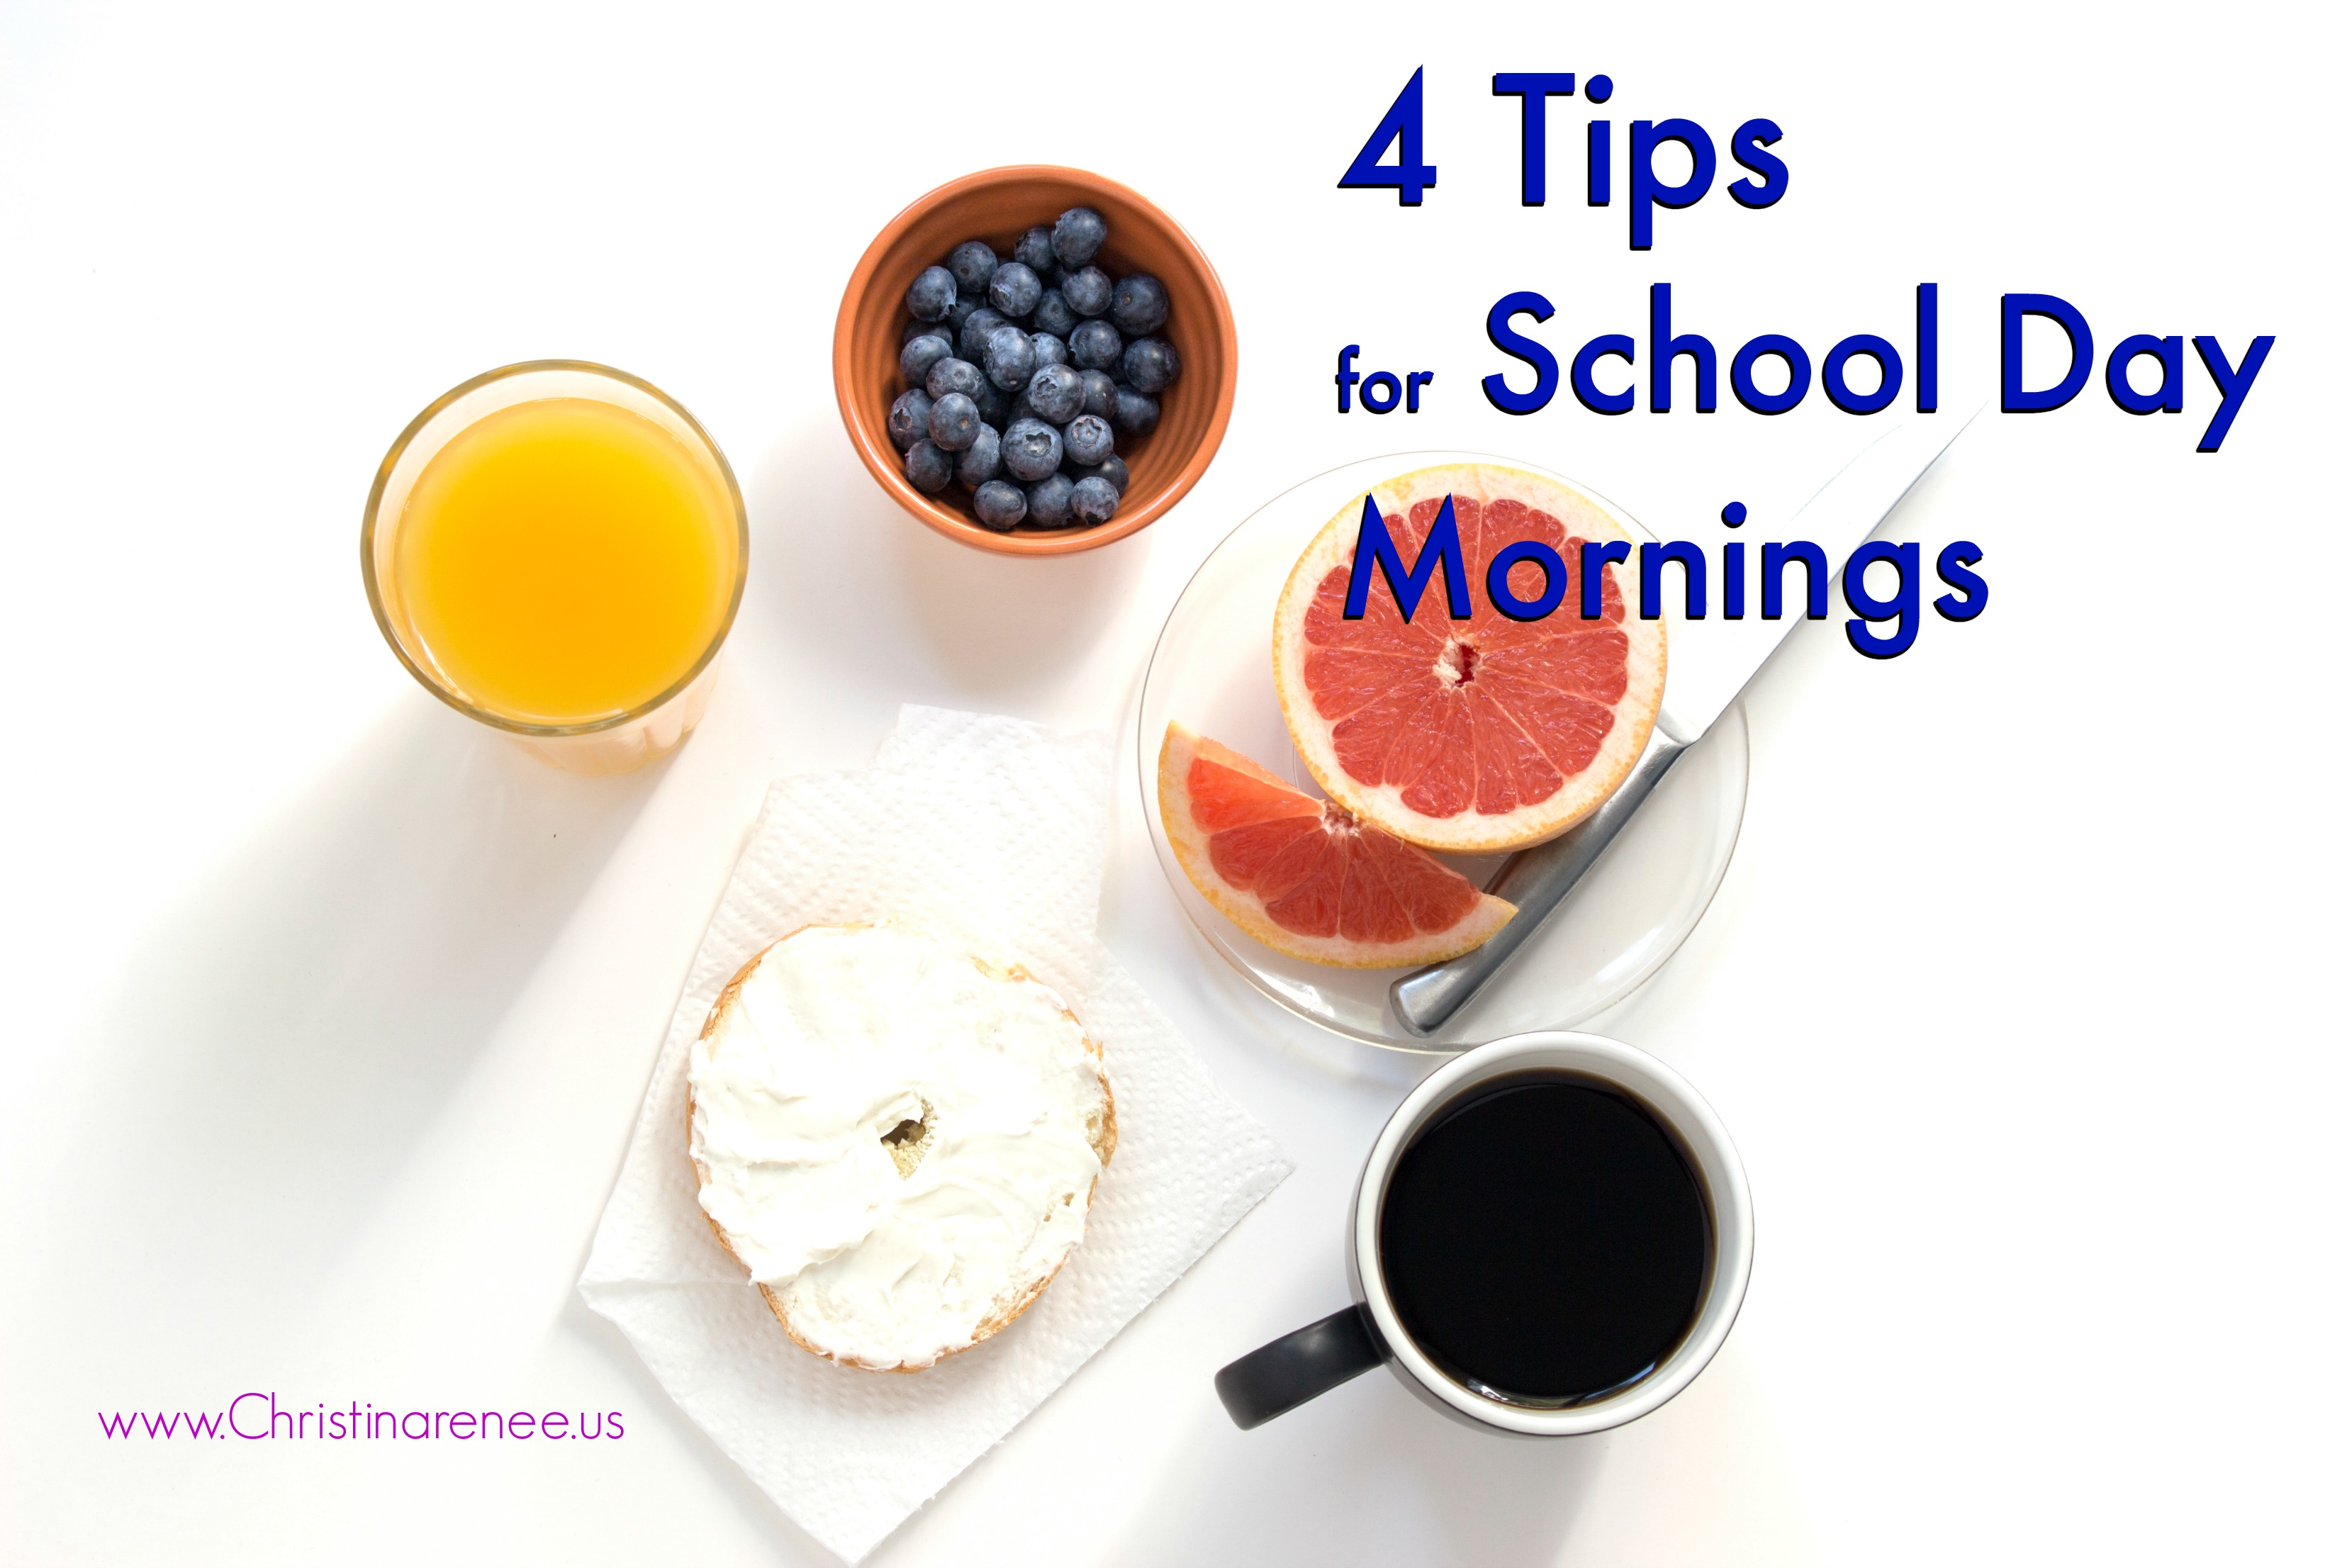 4-tips-for-school-day-mornings